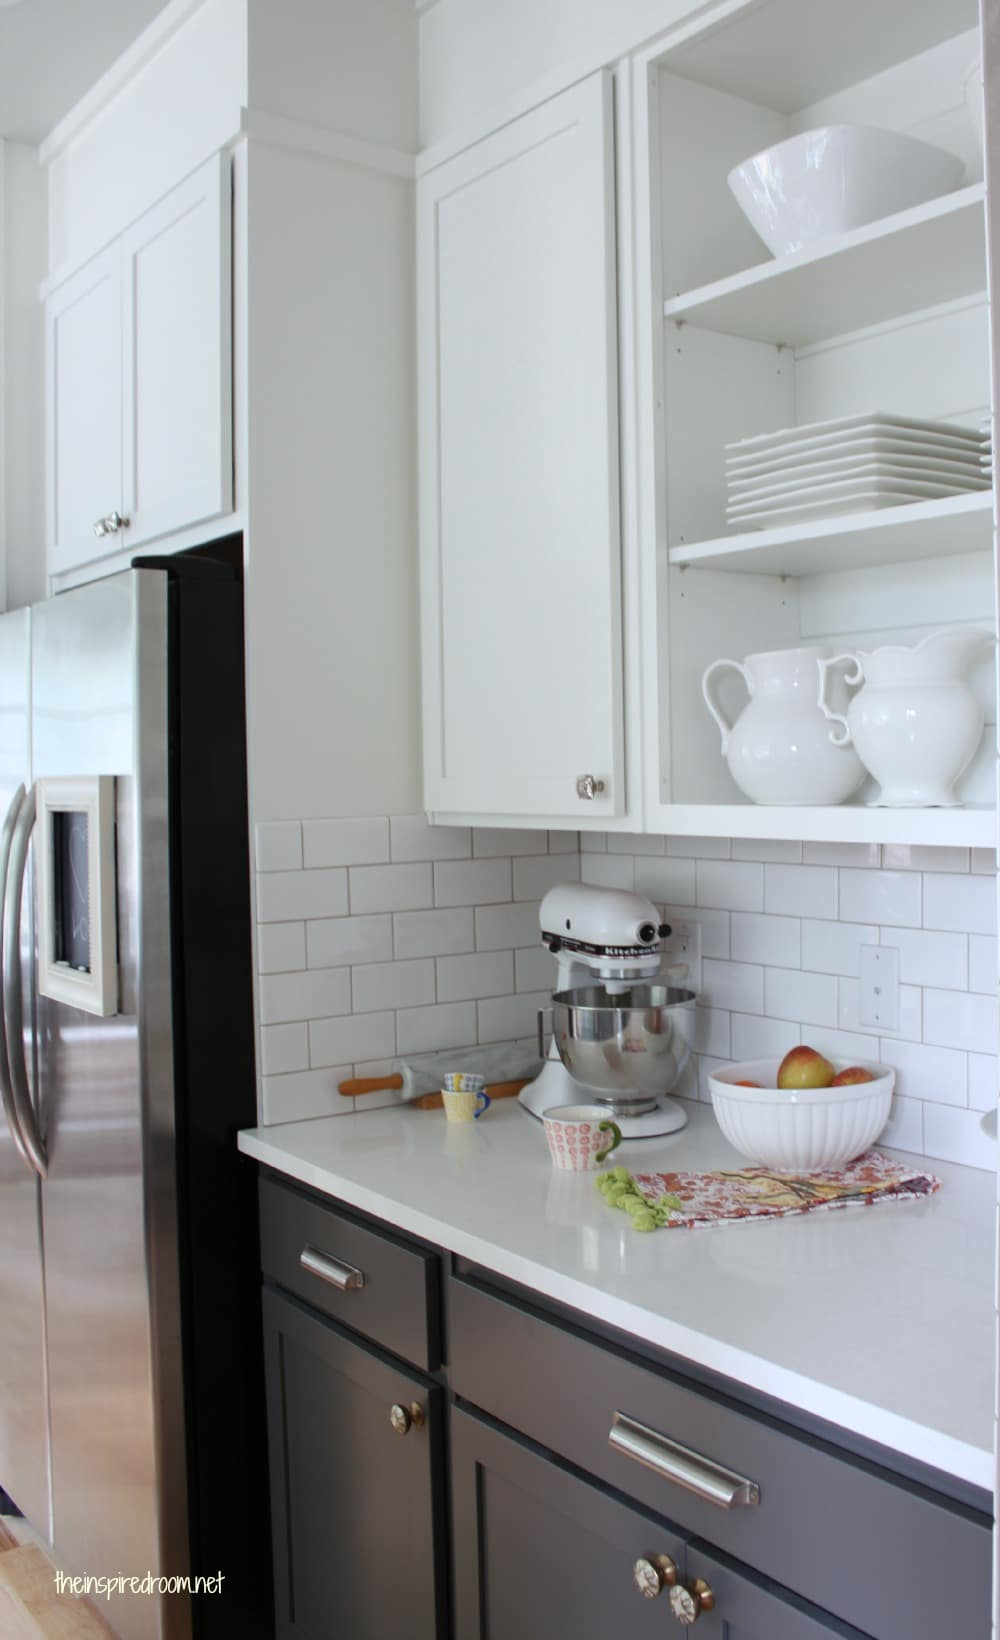 Kitchen cabinet colors before after the inspired room for White kitchen cabinets what color backsplash